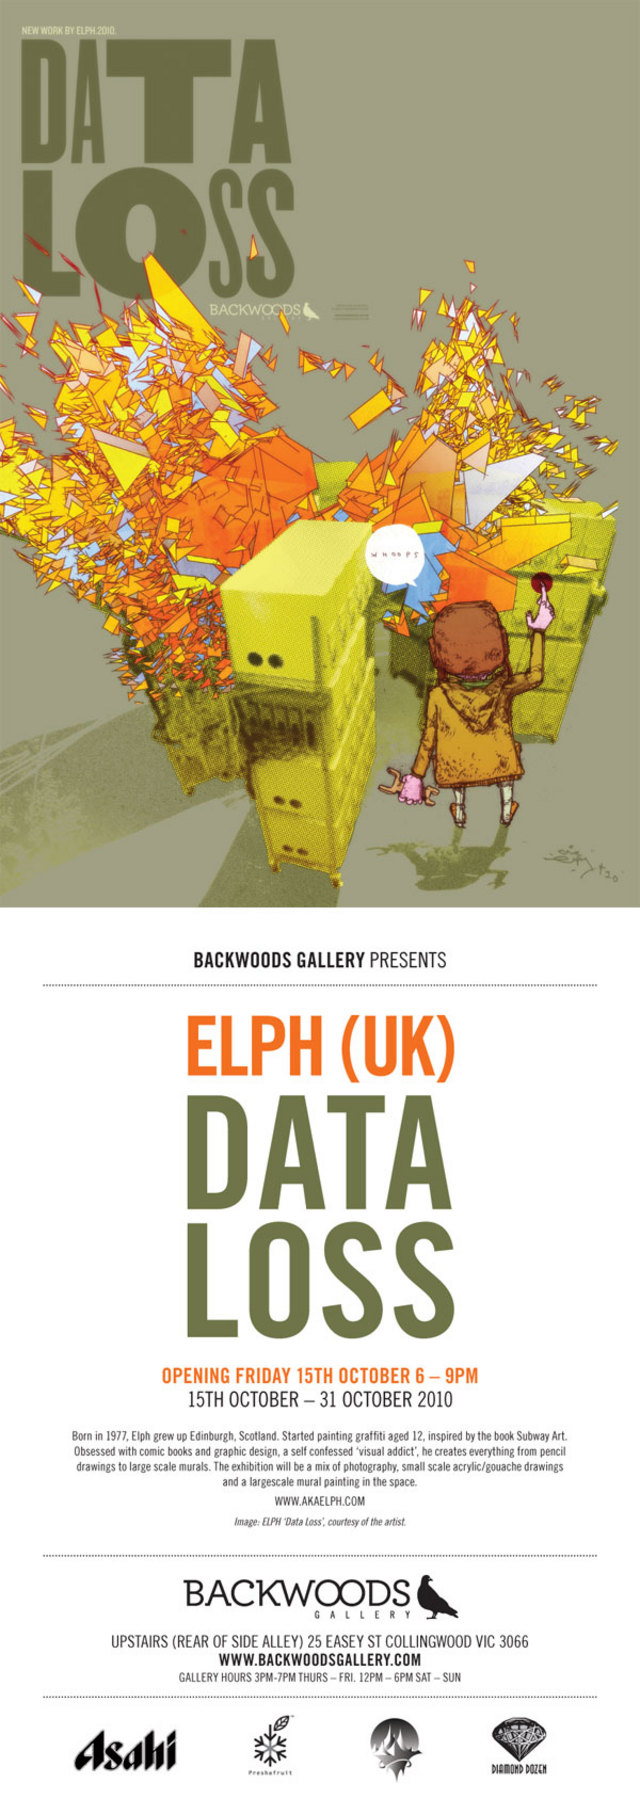 Data Loss by Elph